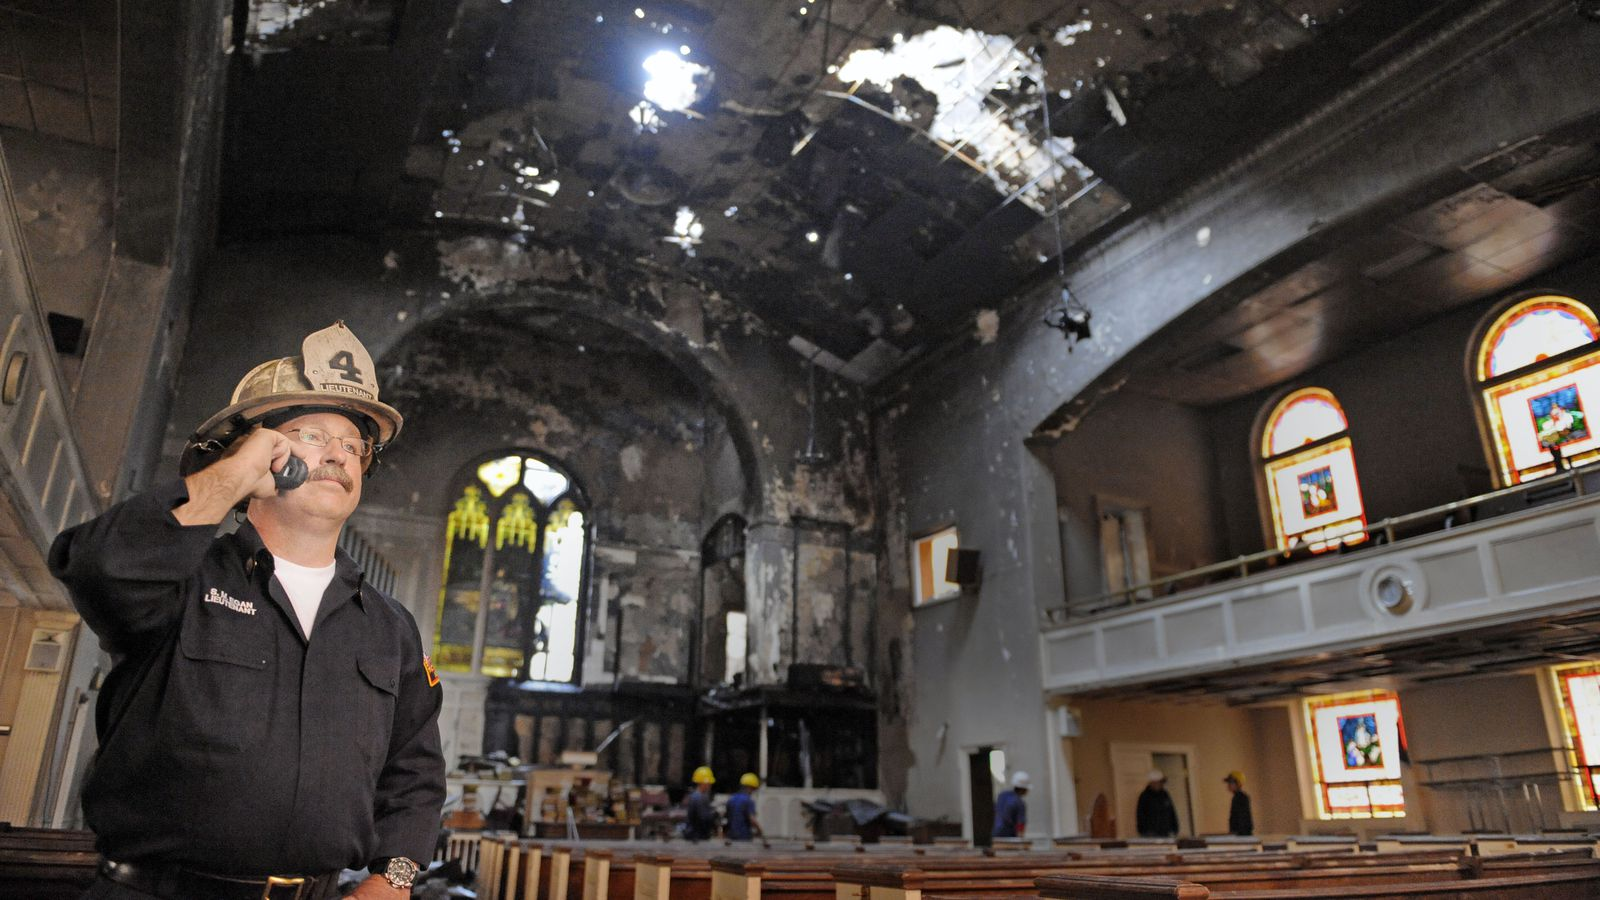 After Notre Dame fire, donations spike for torched black